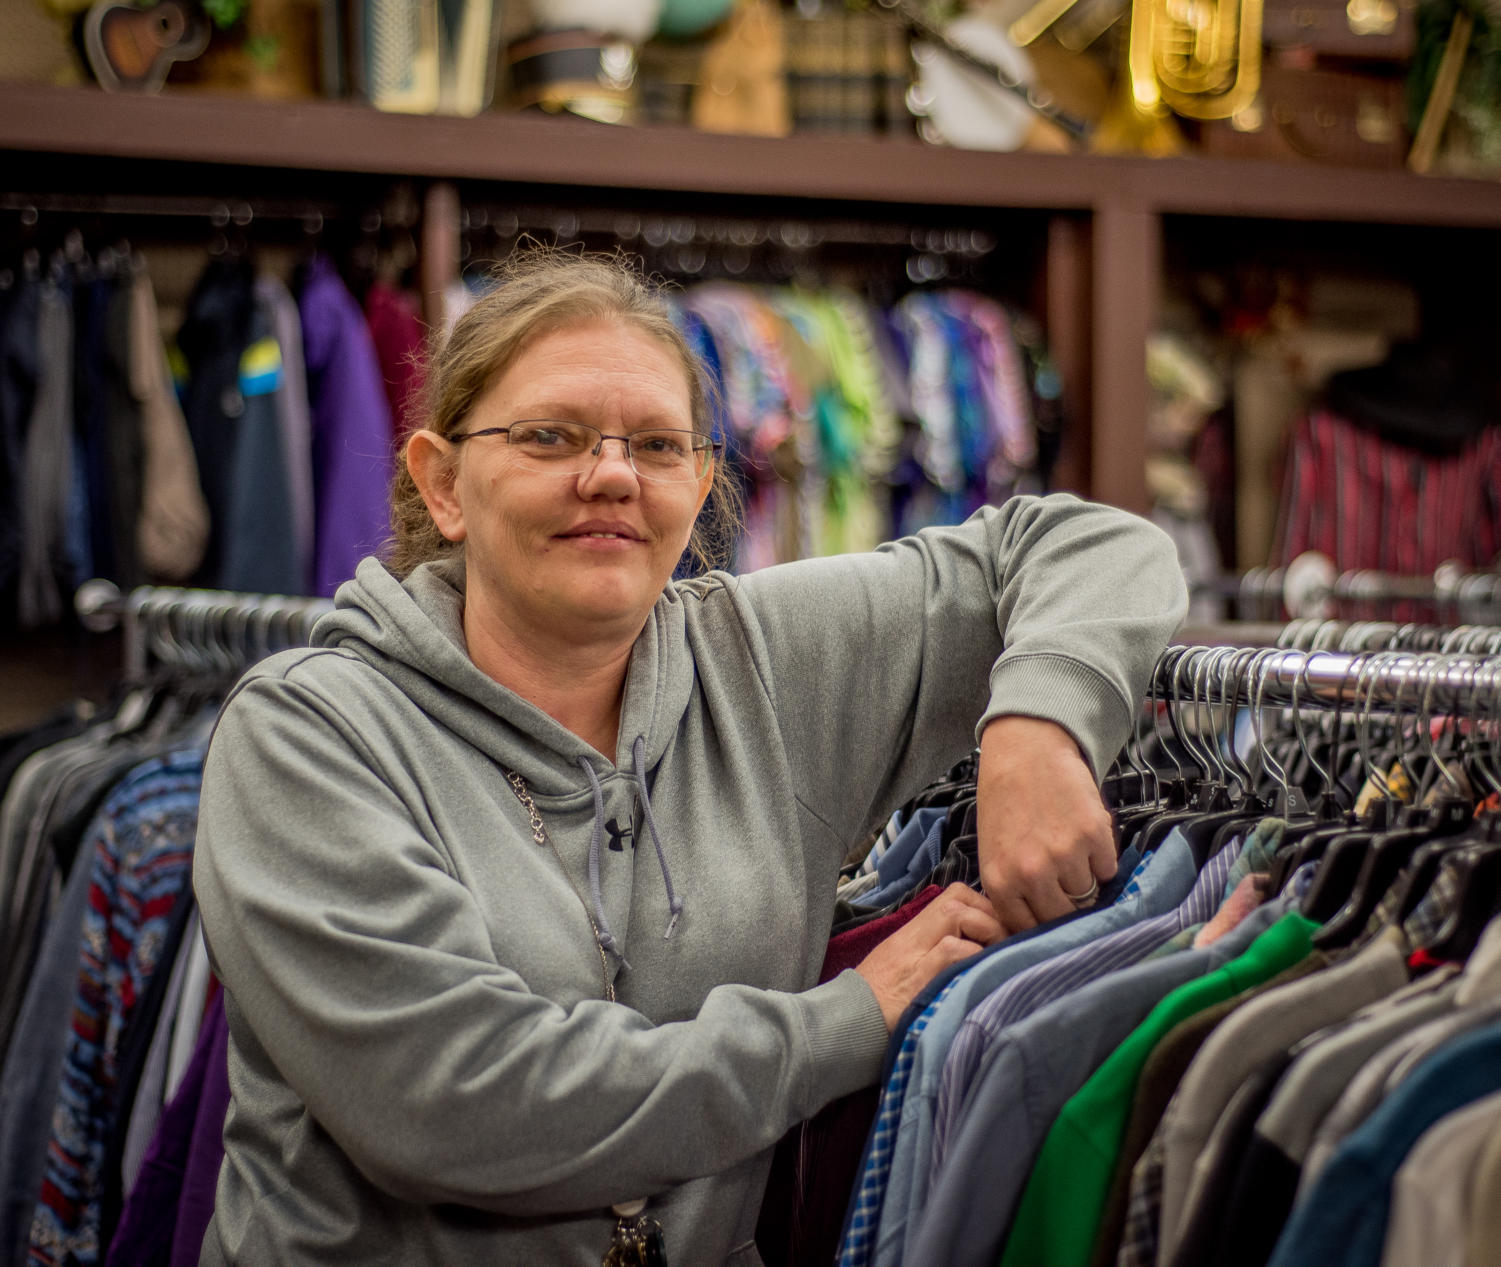 Jennifer Johnson, of Murphysboro, poses for a portrait Monday, Jan. 23, 2018, at The Thrift Shop in Carbondale. The Thrift Shop, where Johnson serves as store manager, provides items for the public's purchase but also assists the community in providing clothing and household goods to those in need.